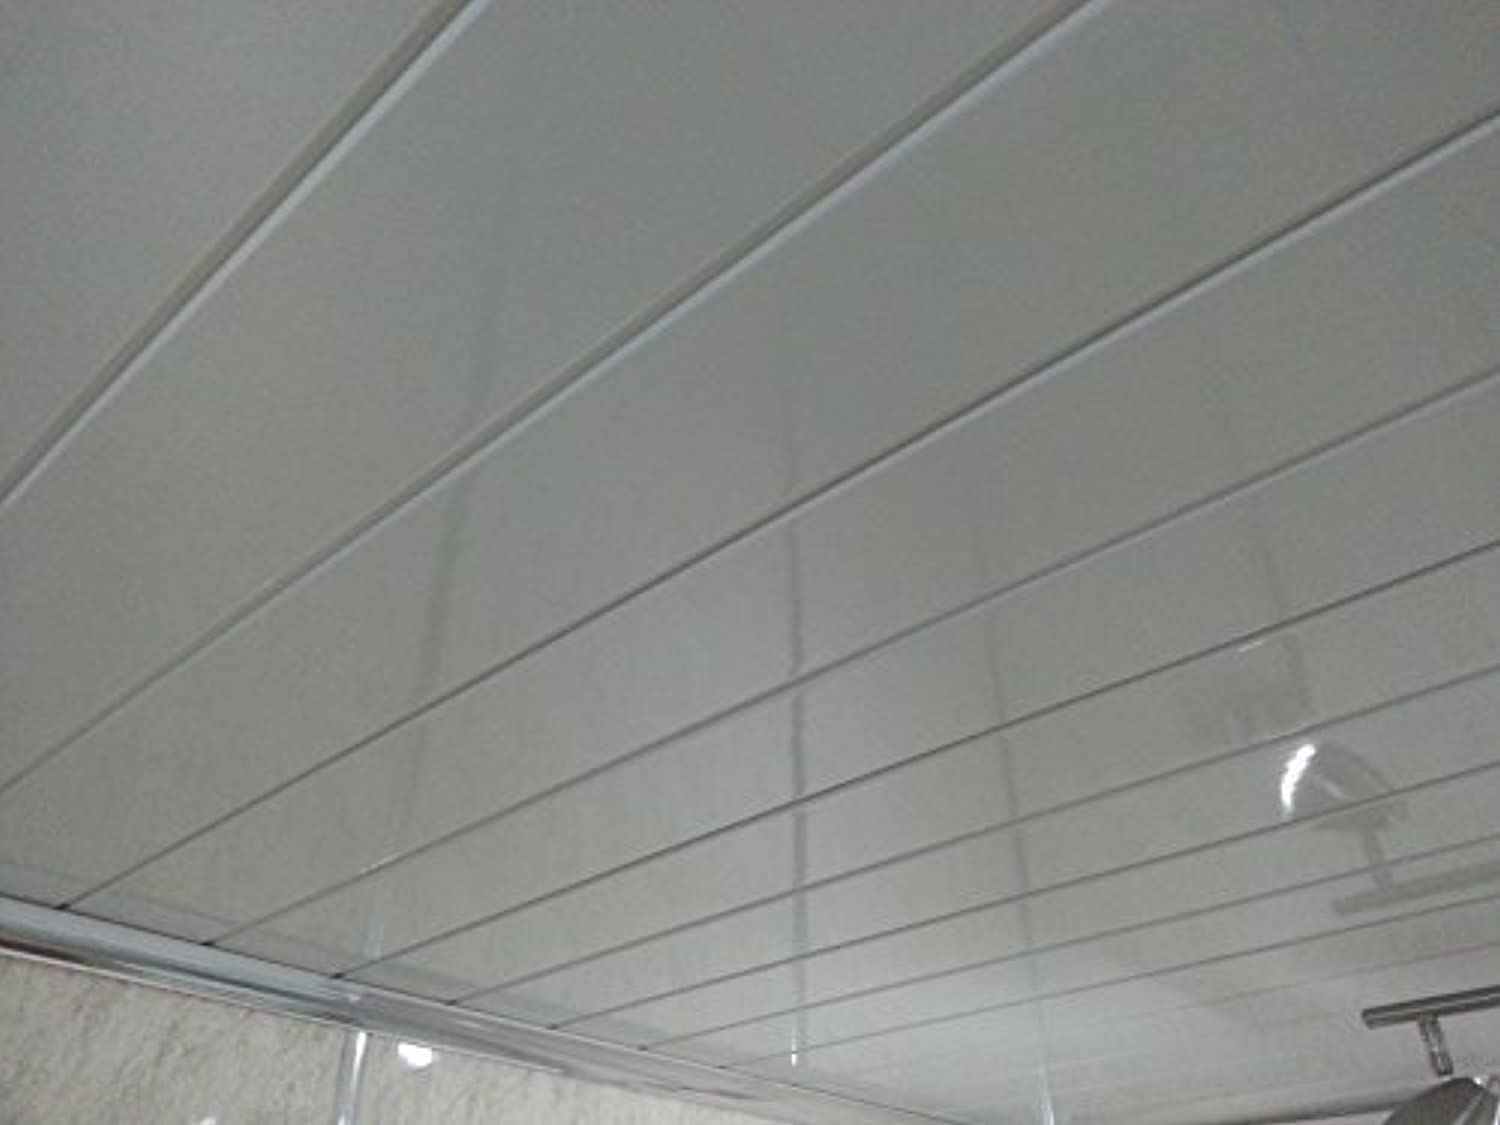 5 twin white pvc bathroom cladding shower wall ceiling. Black Bedroom Furniture Sets. Home Design Ideas